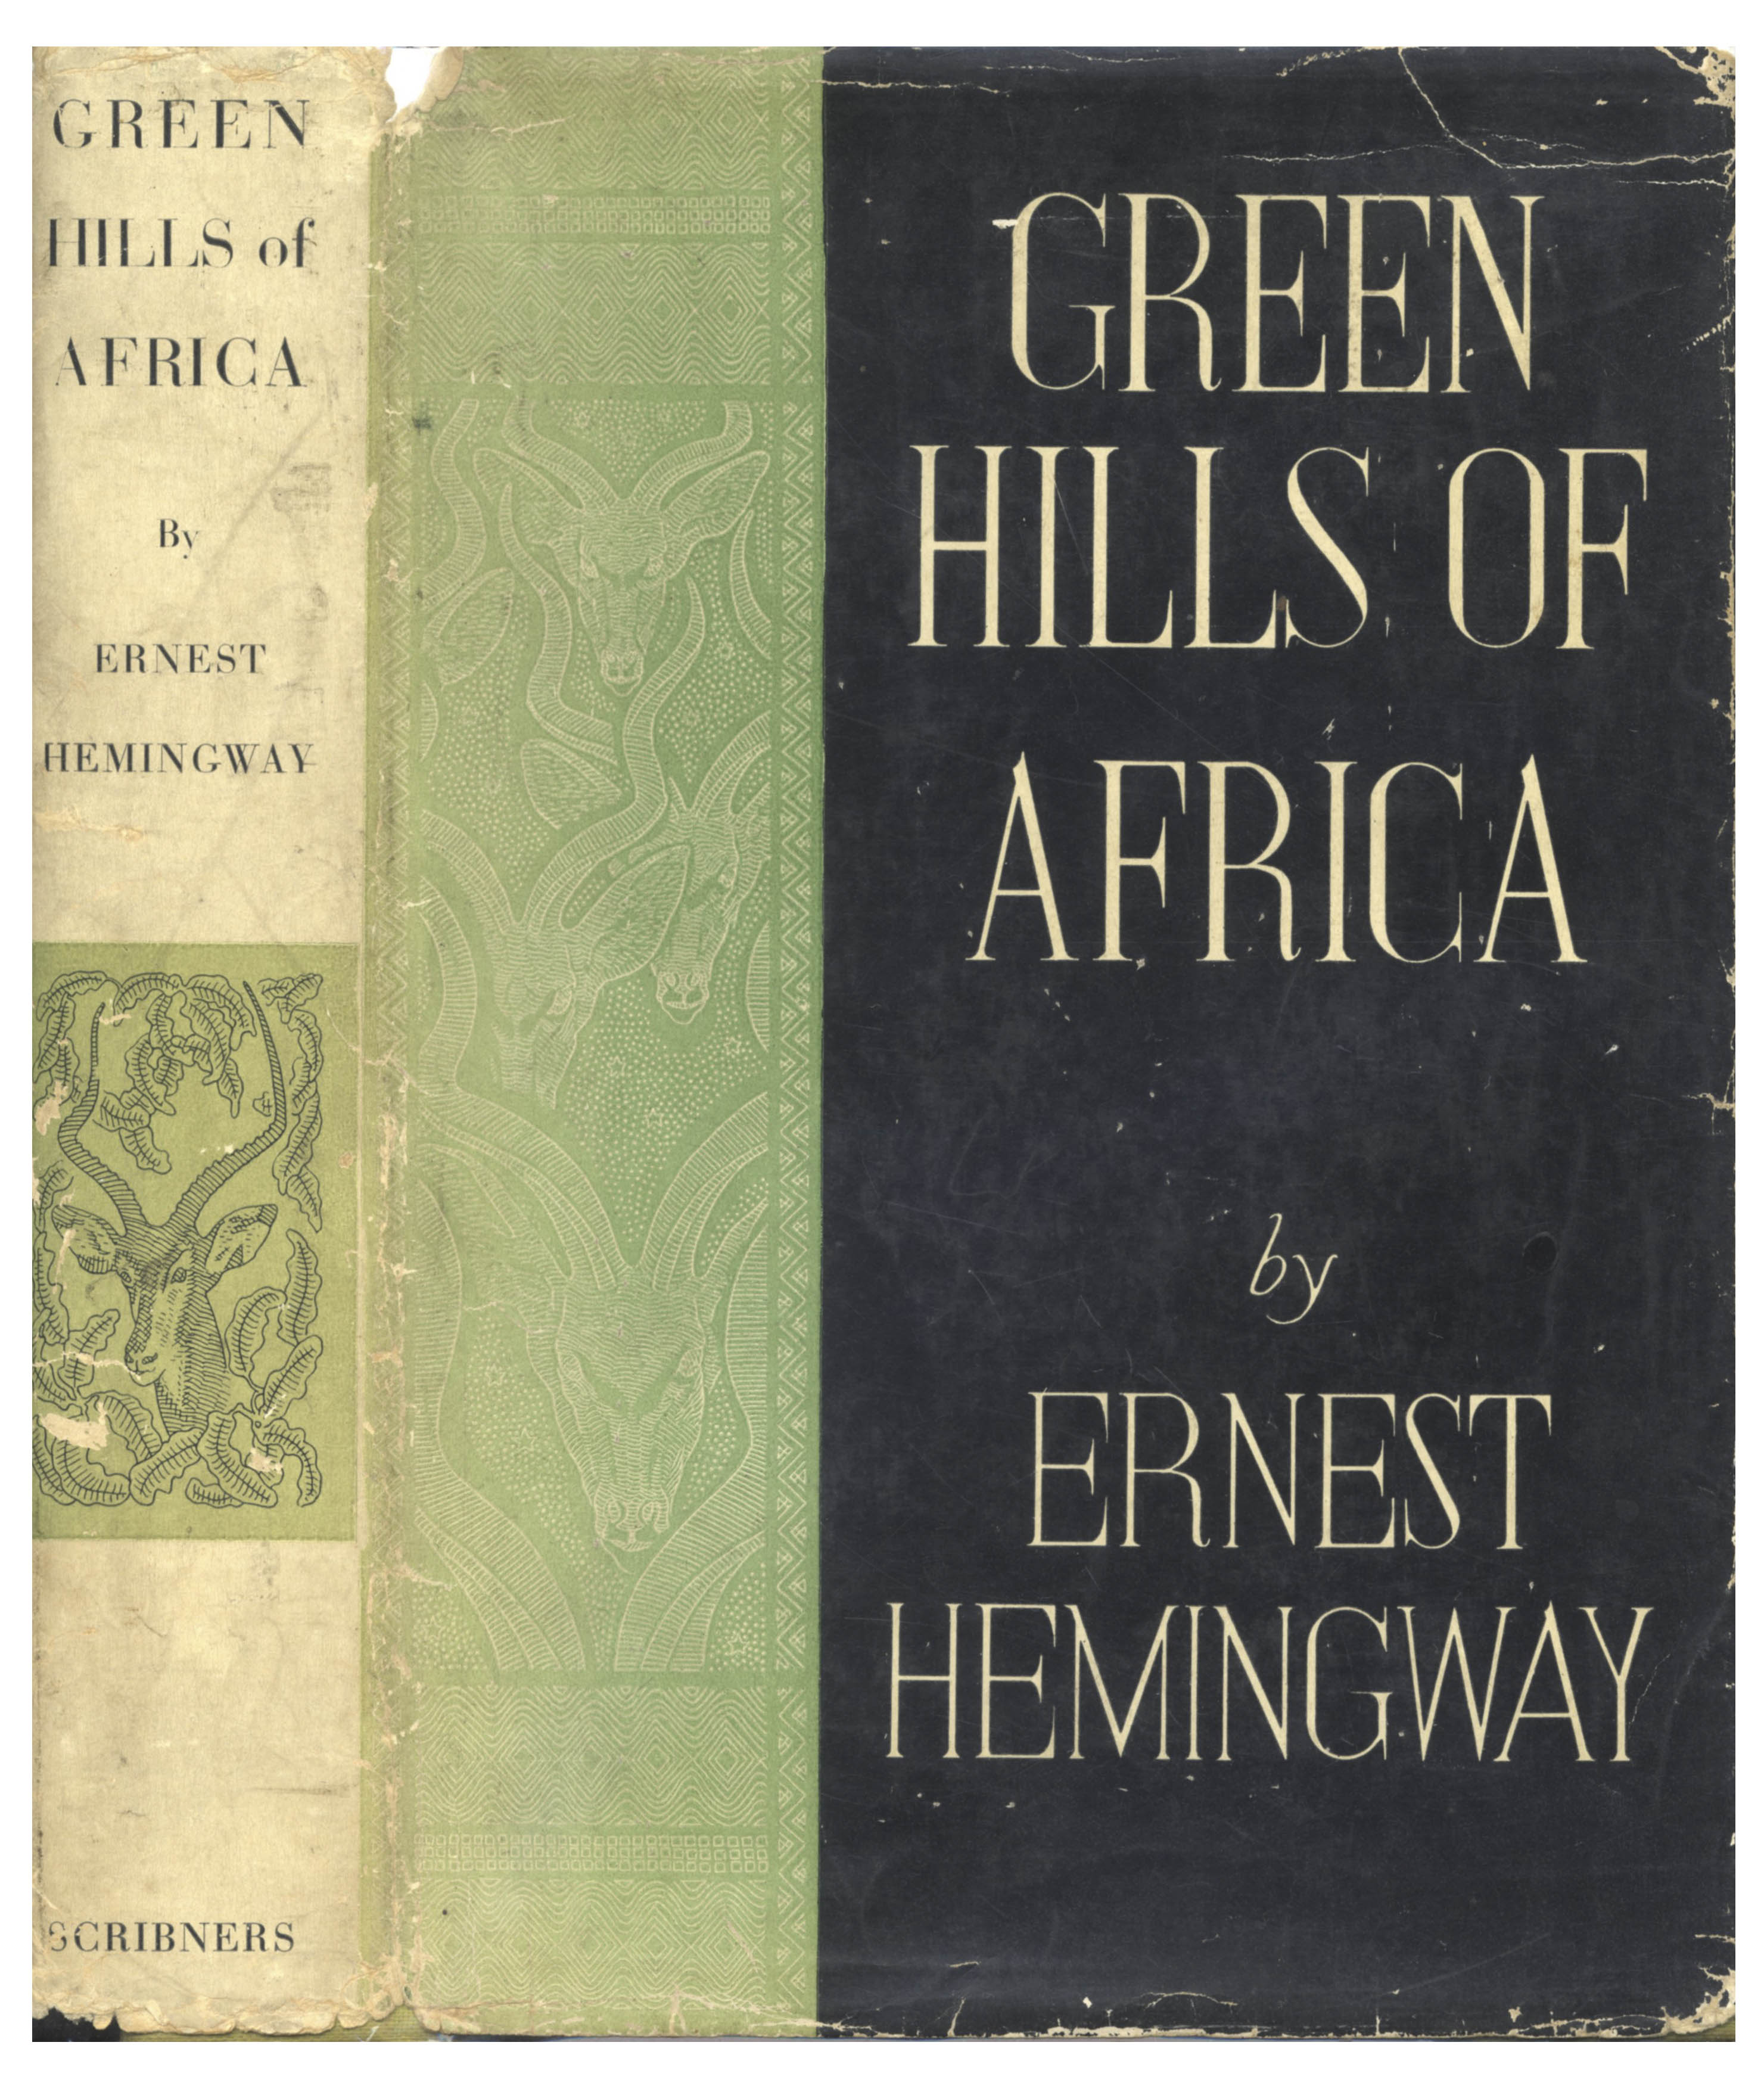 ERNEST HEMINGWAY Green Hills of Africa 1st Ed 1st Prt w/ A and Seal 1935 SCRIBNERS